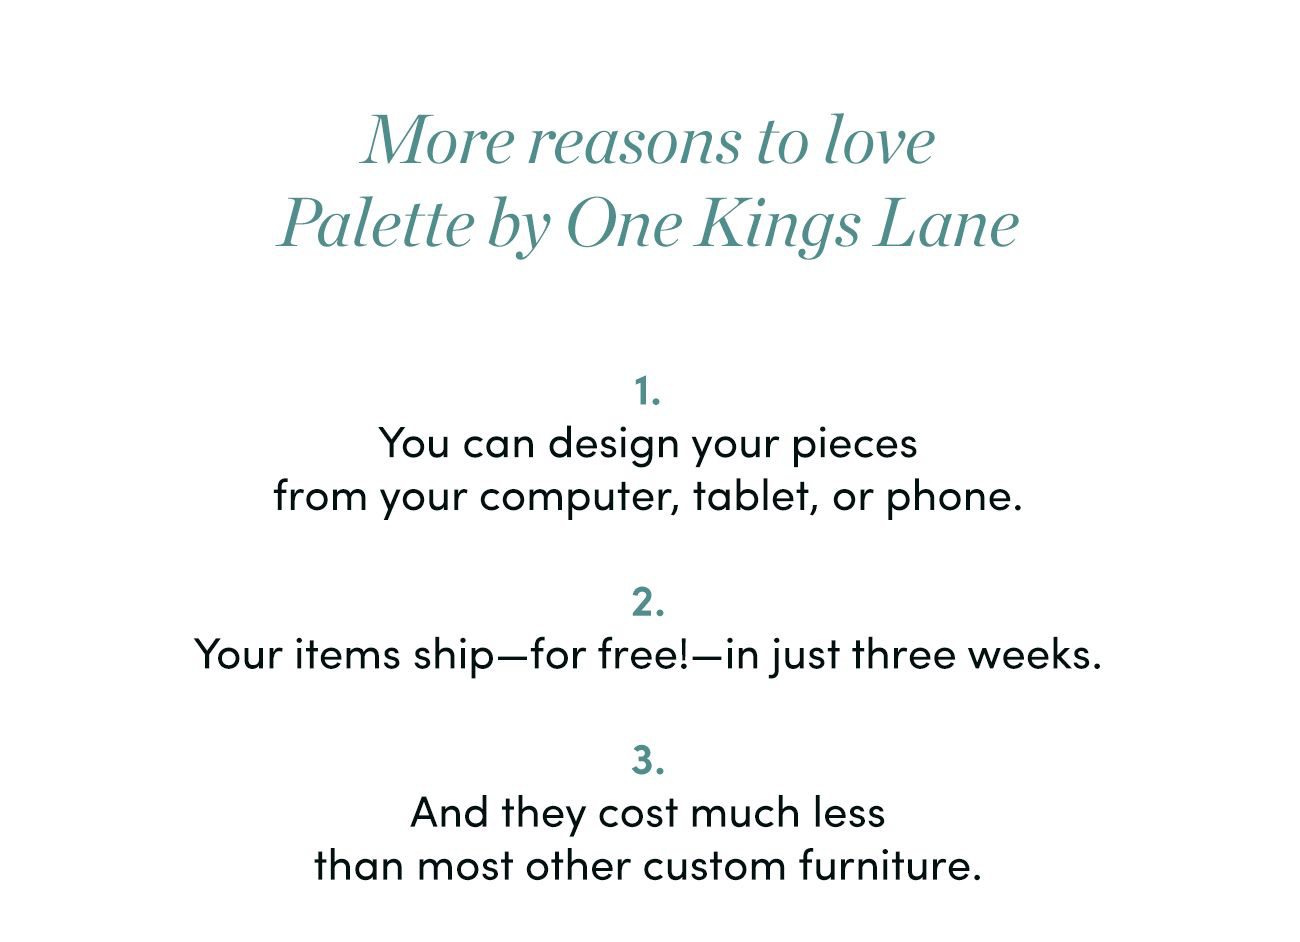 More reasons to love Palette by One Kings Lane...